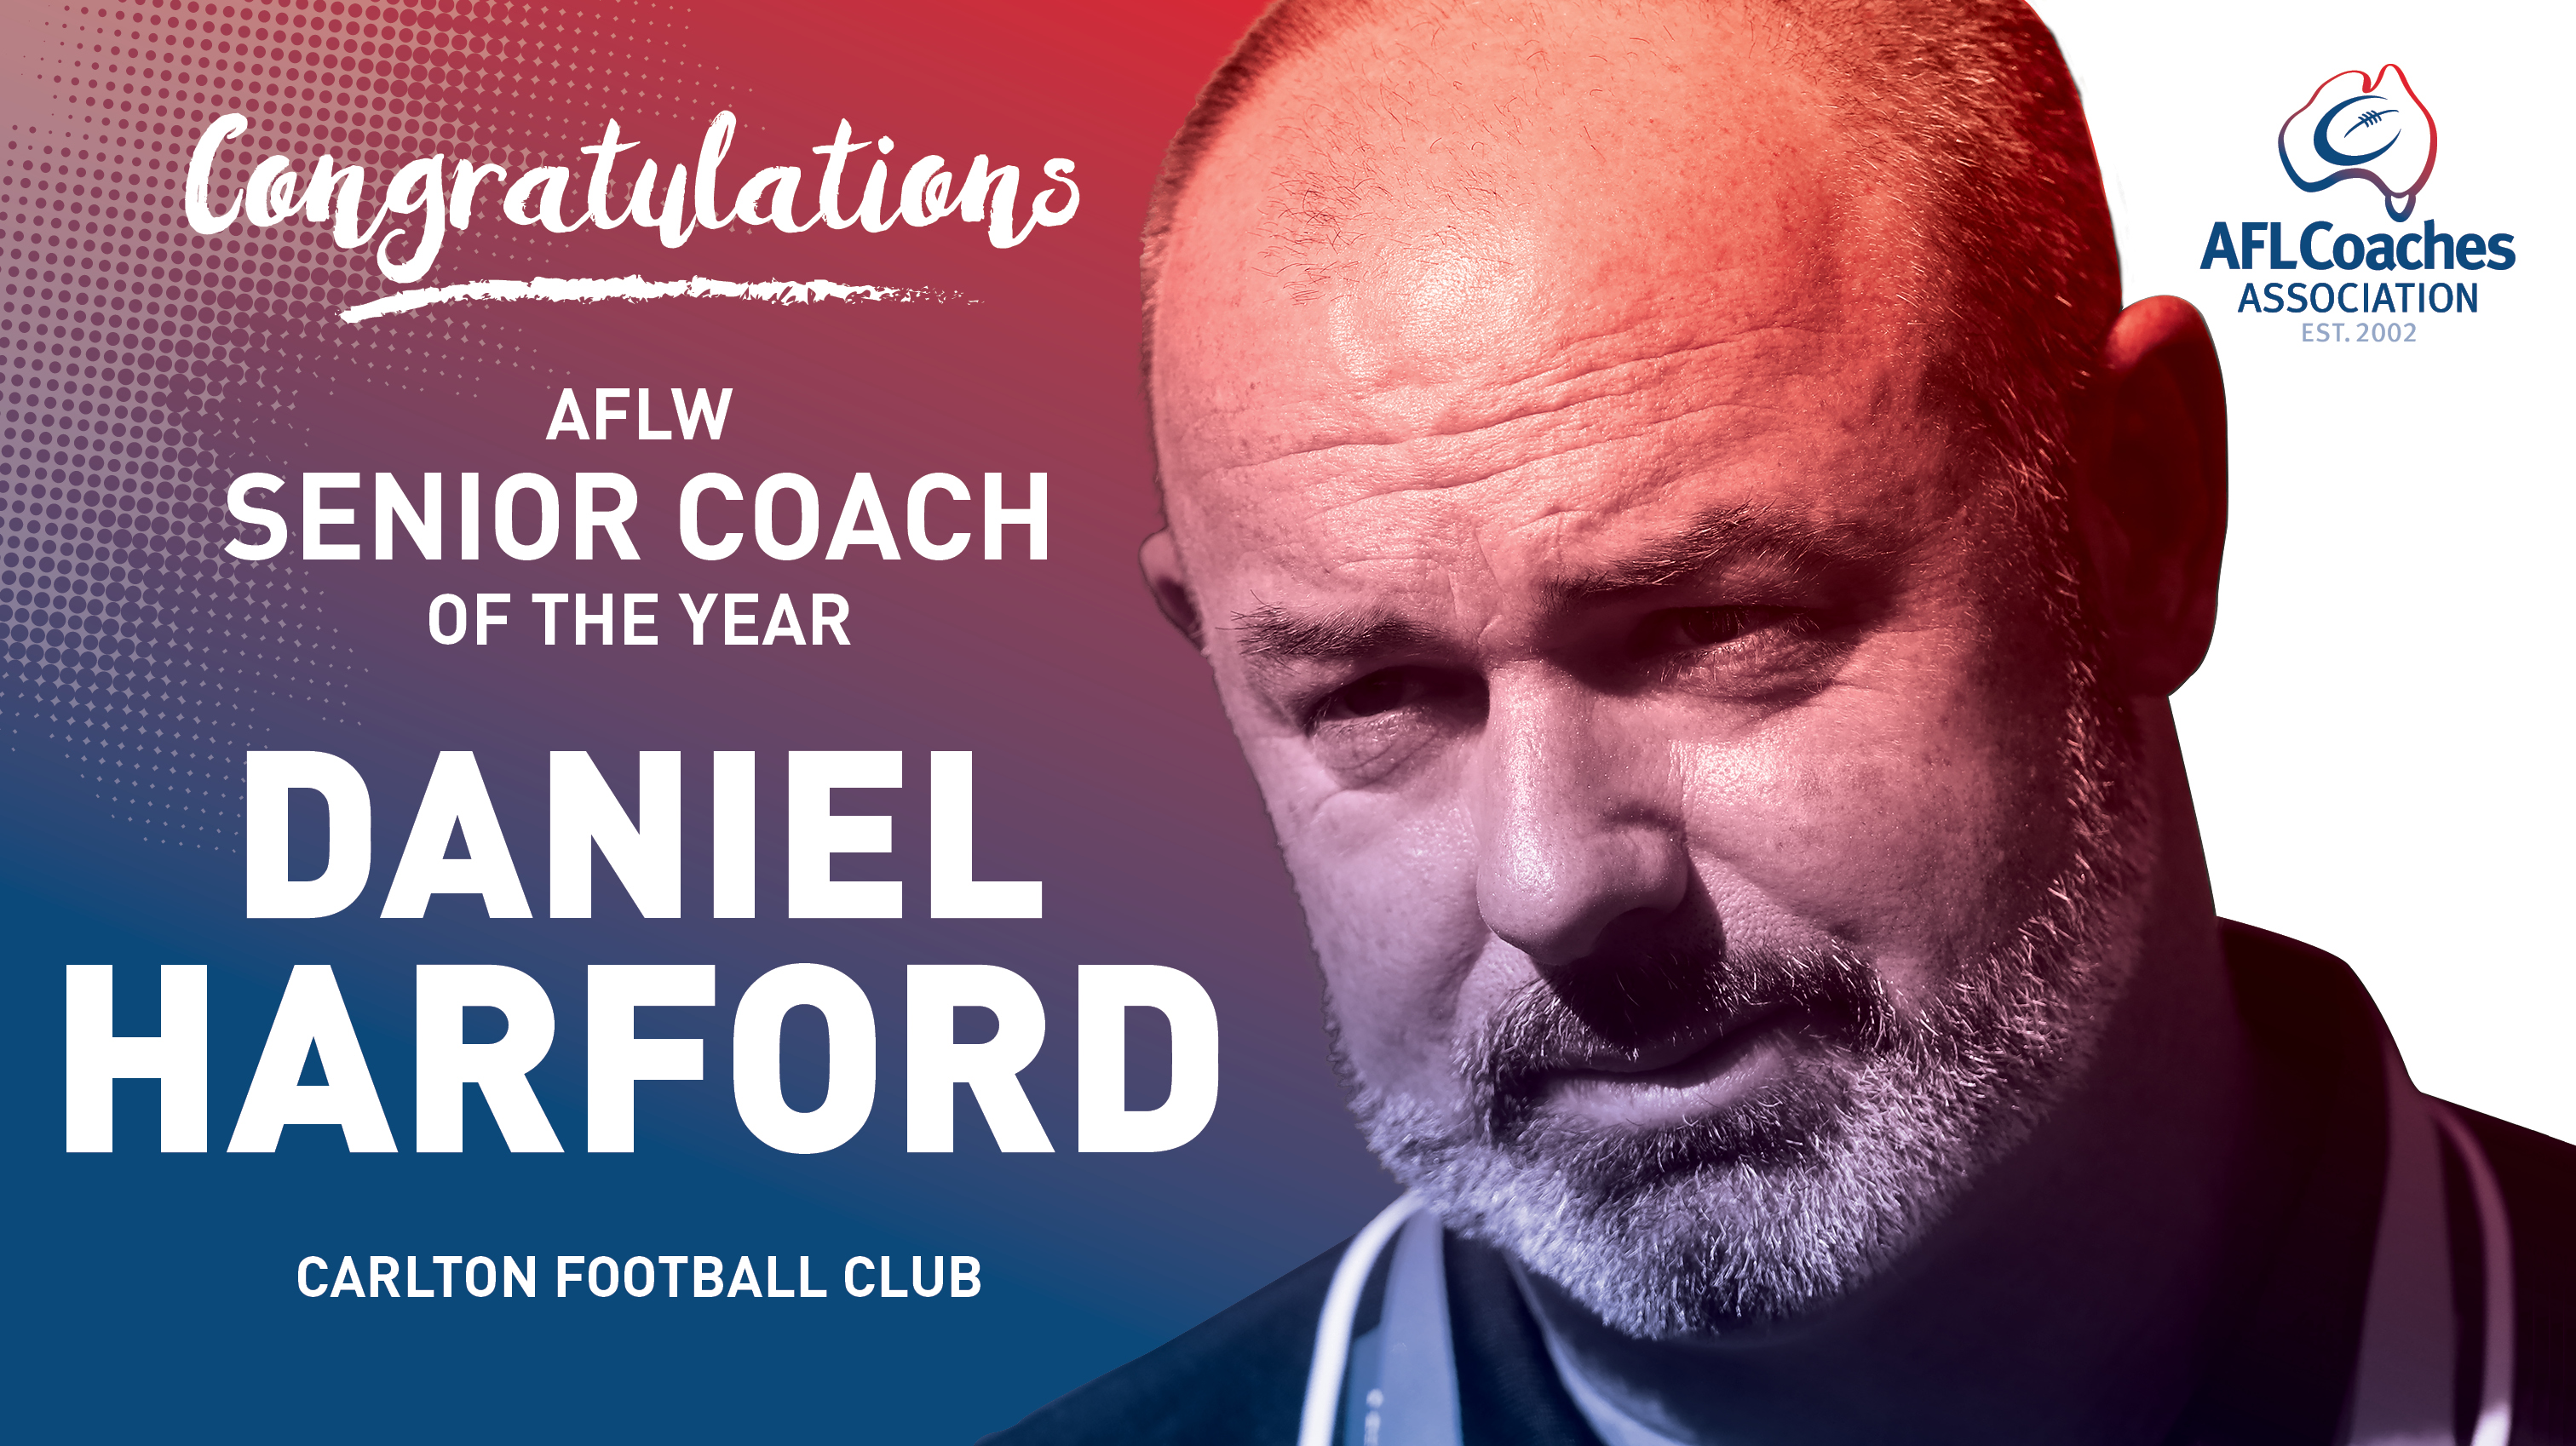 AFLW Senior Coach of the Year